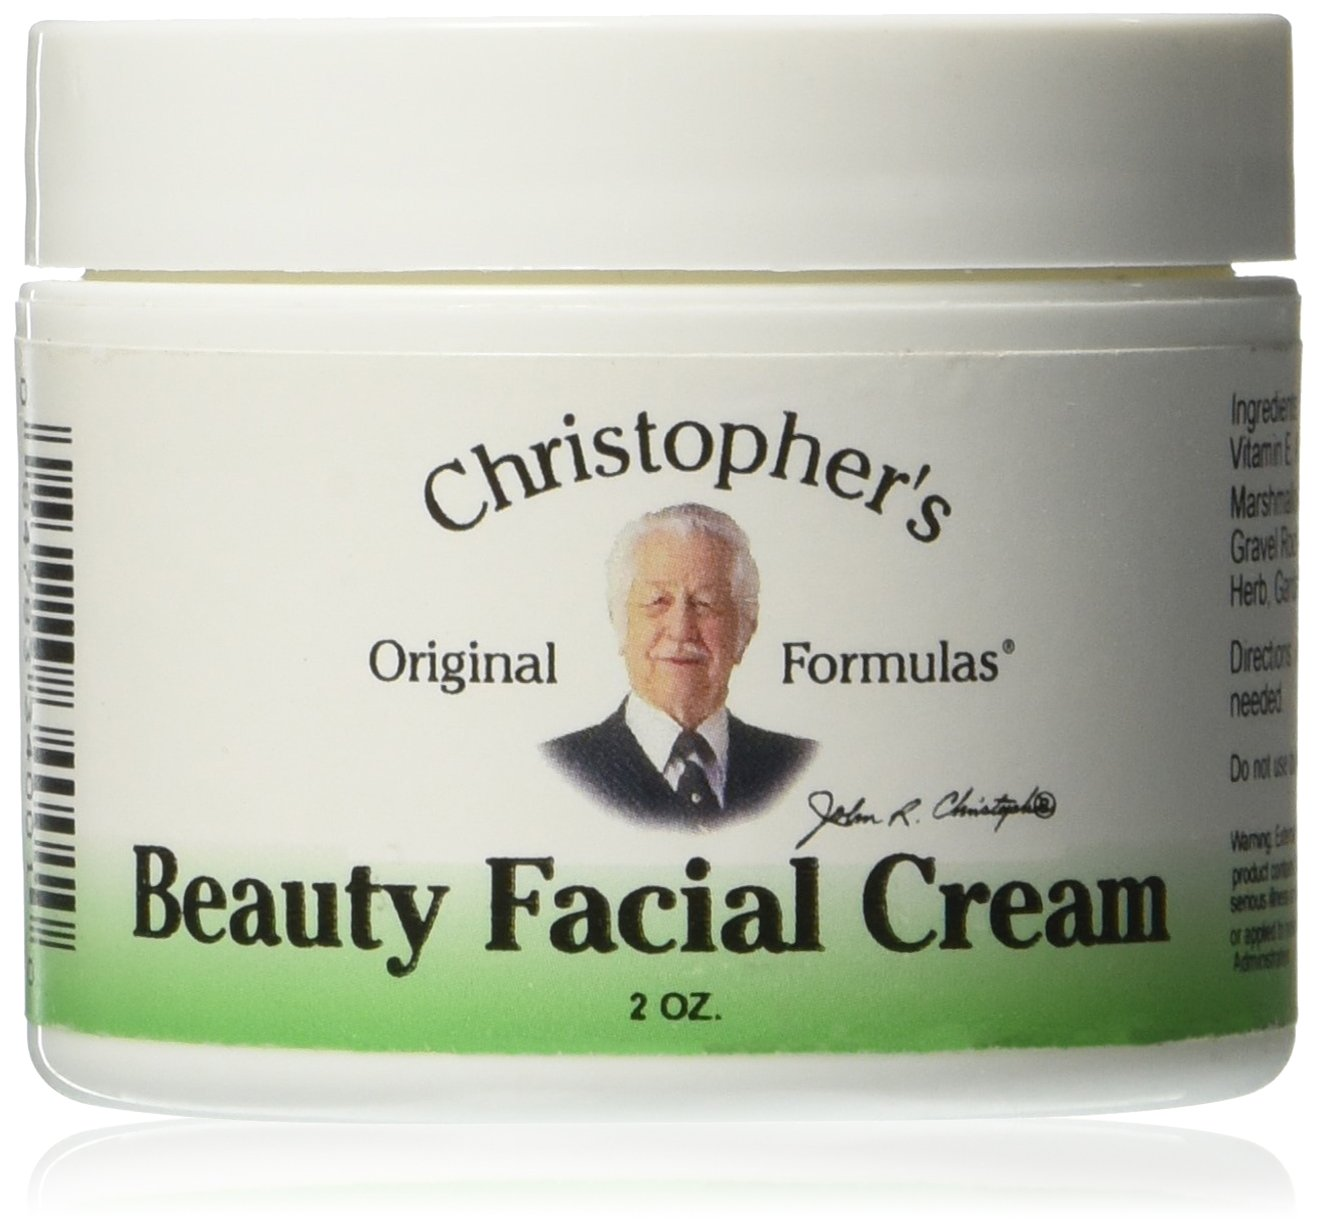 Dr. Christopher's Dr. Christophers Formulas Ointment Beauty Facial Cream